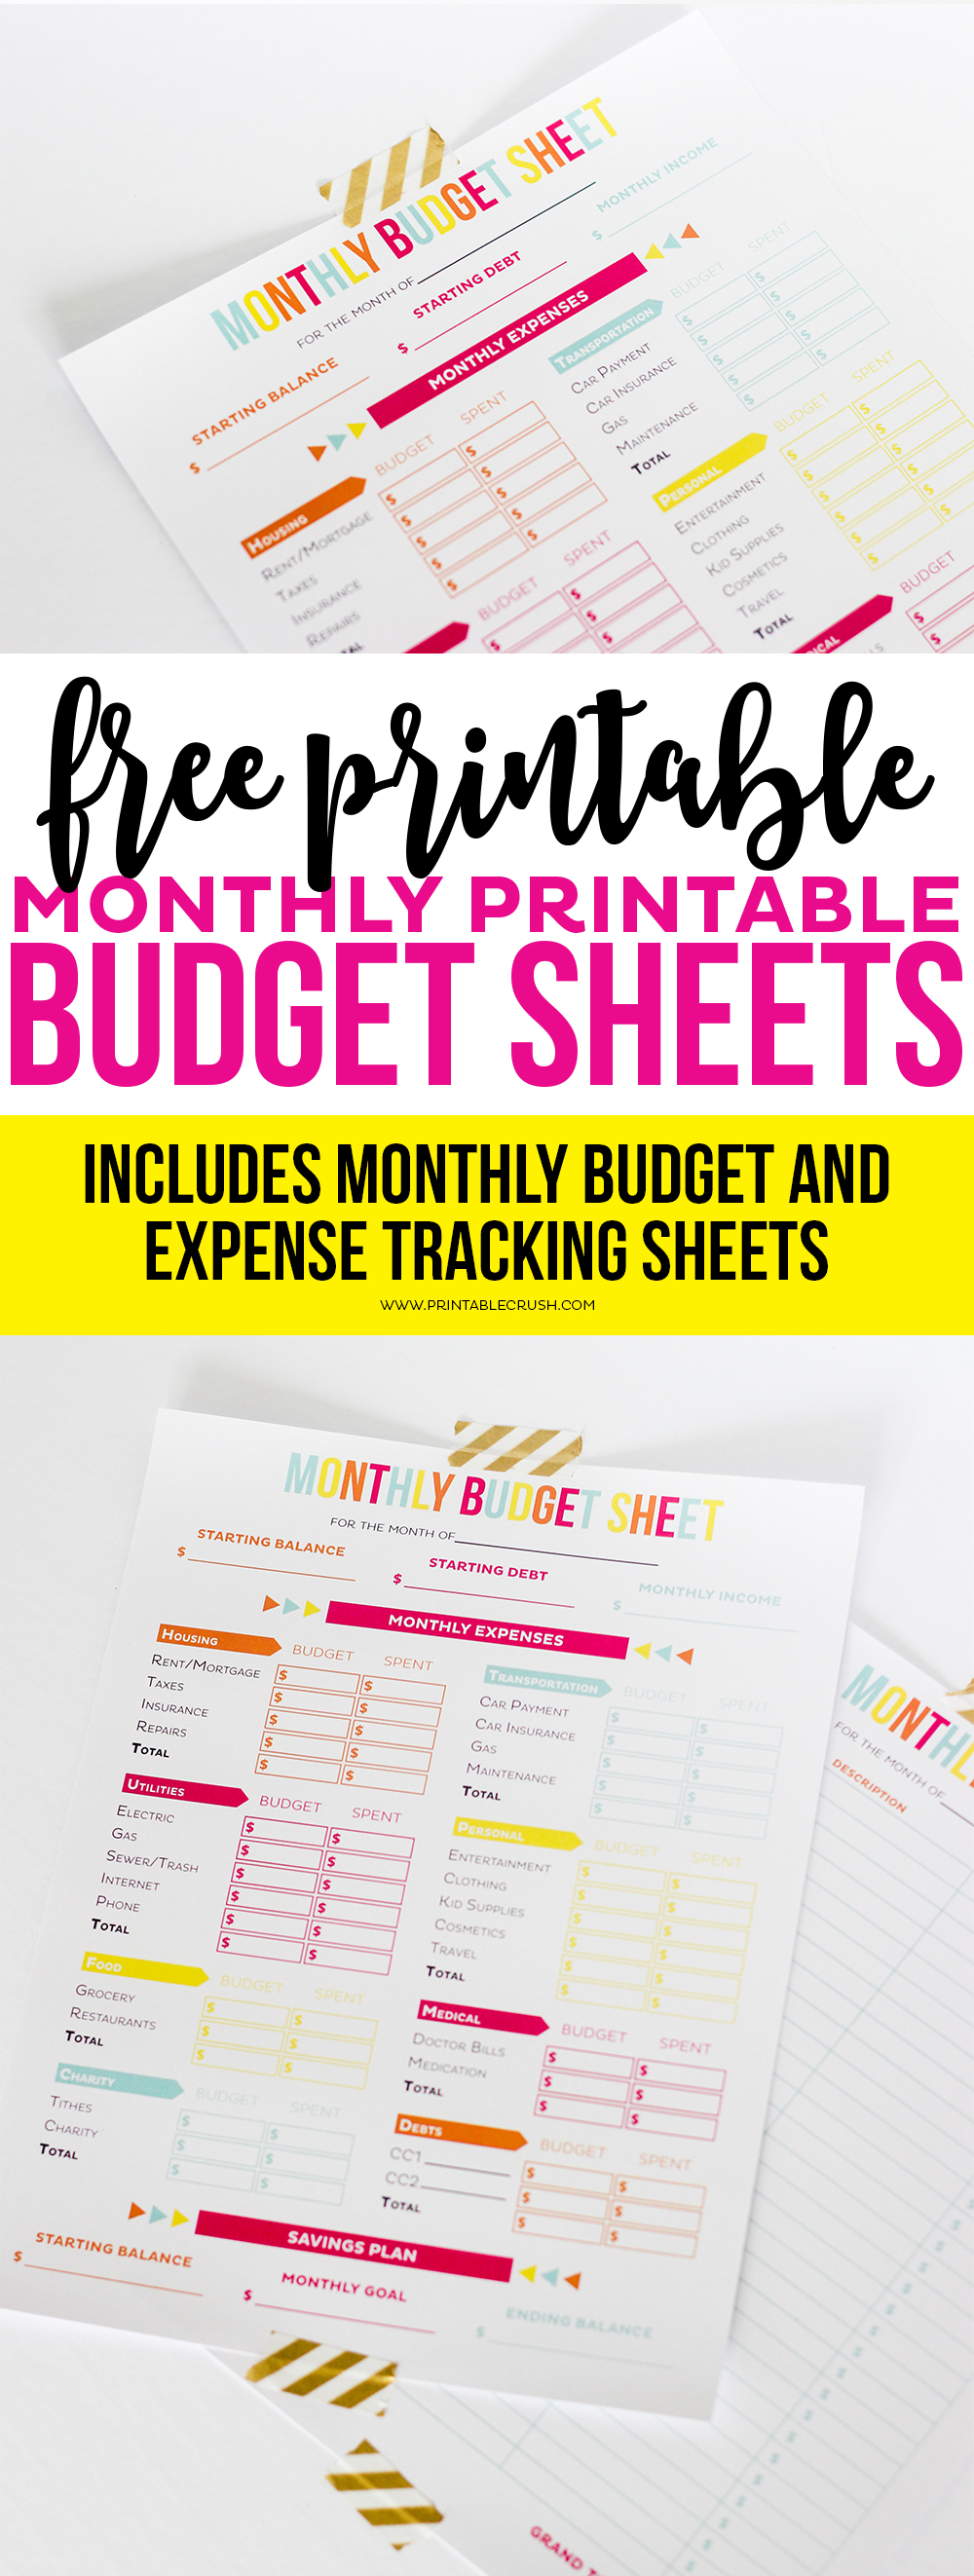 budget sheet long pin collage